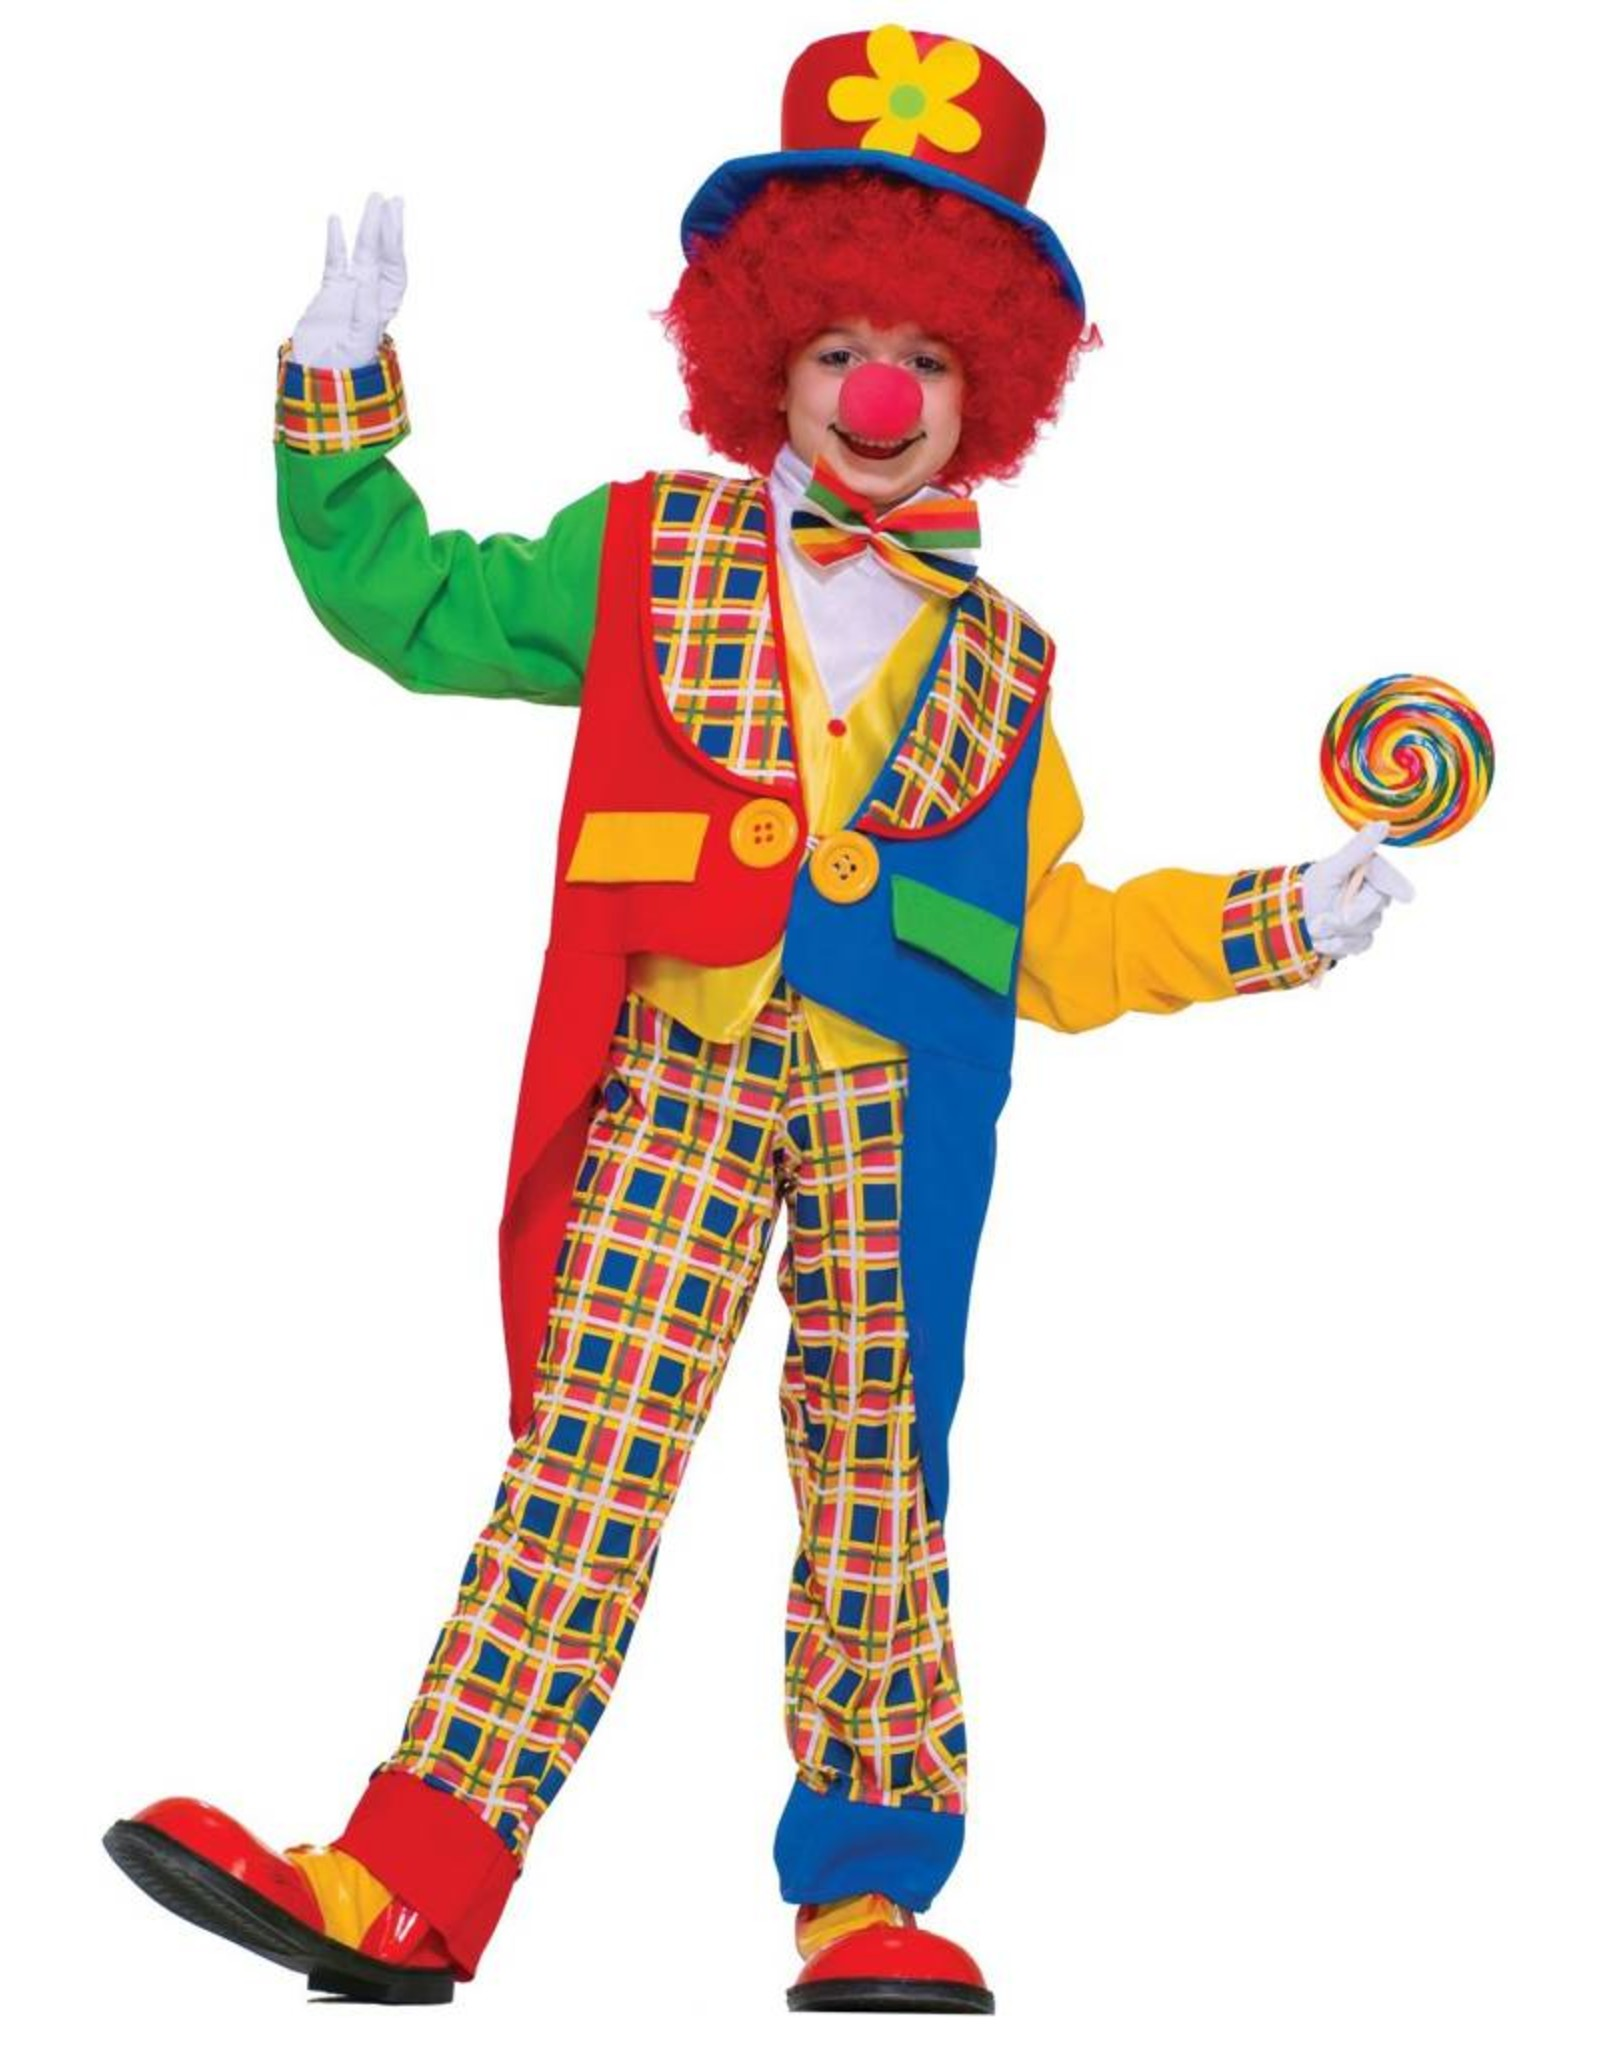 Forum Clown on the Town